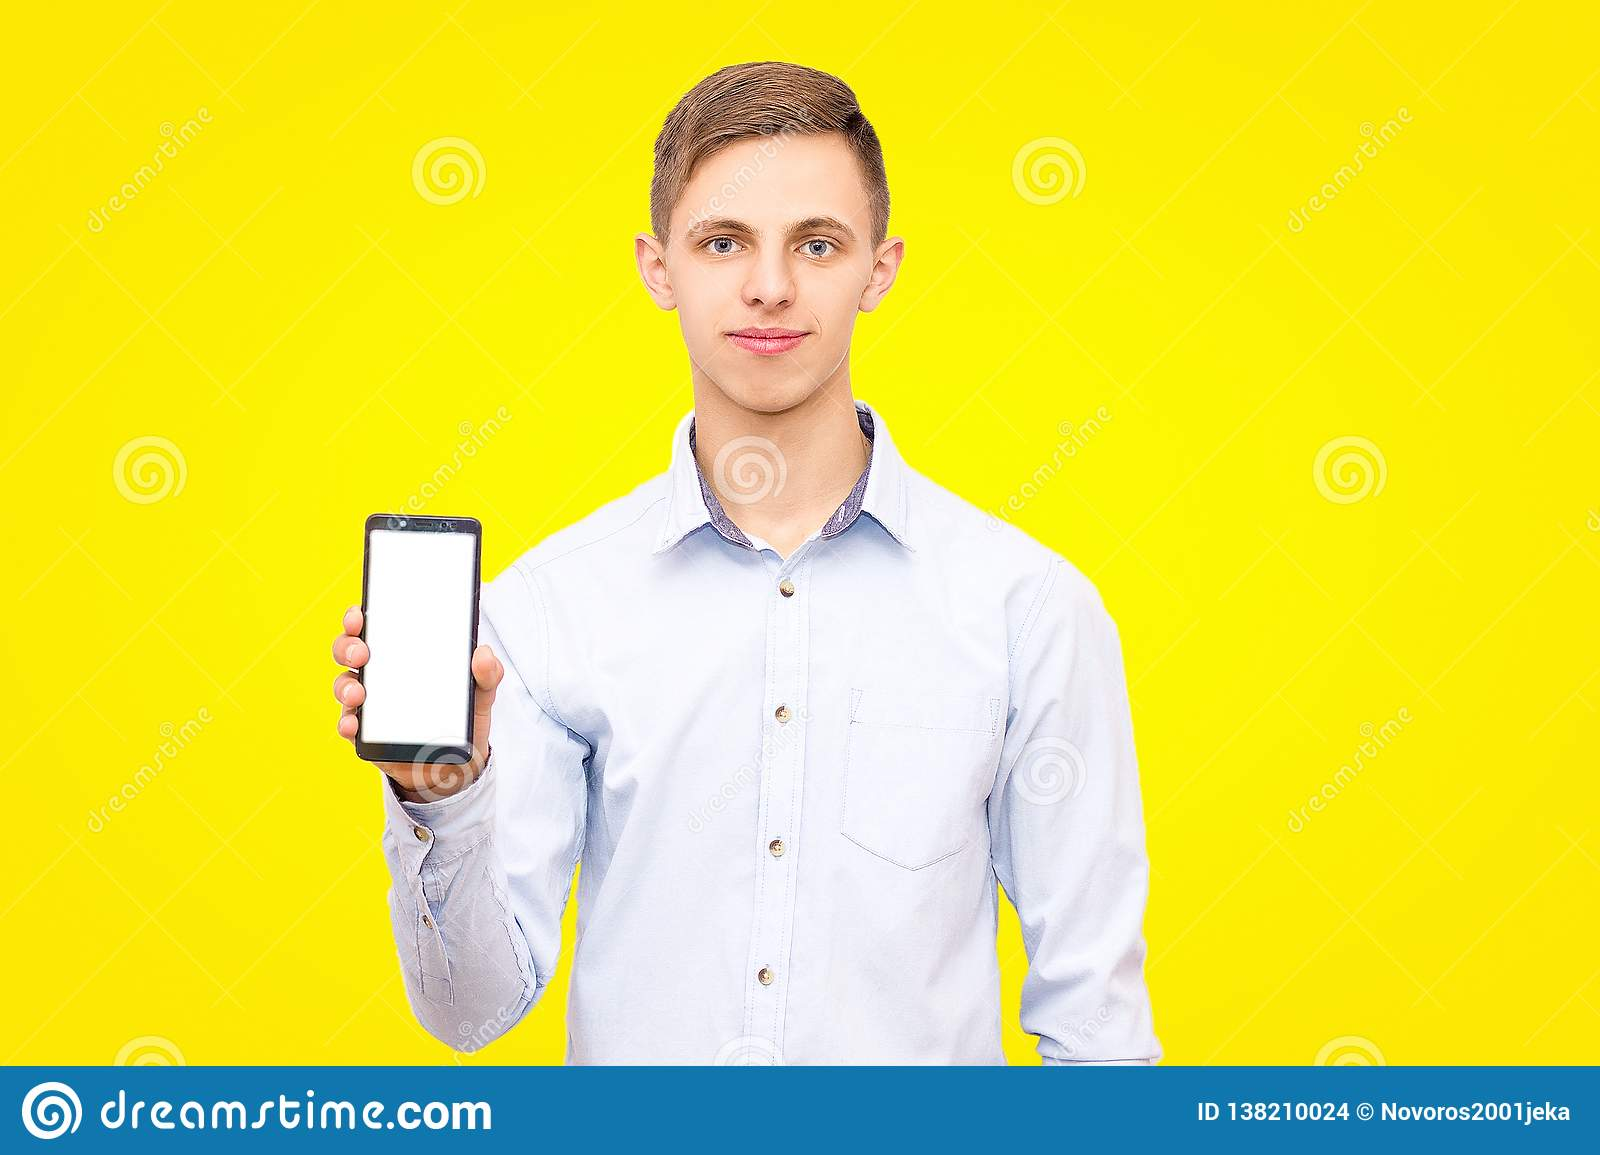 The guy in the blue shirt advertises the phone isolated on a yellow background